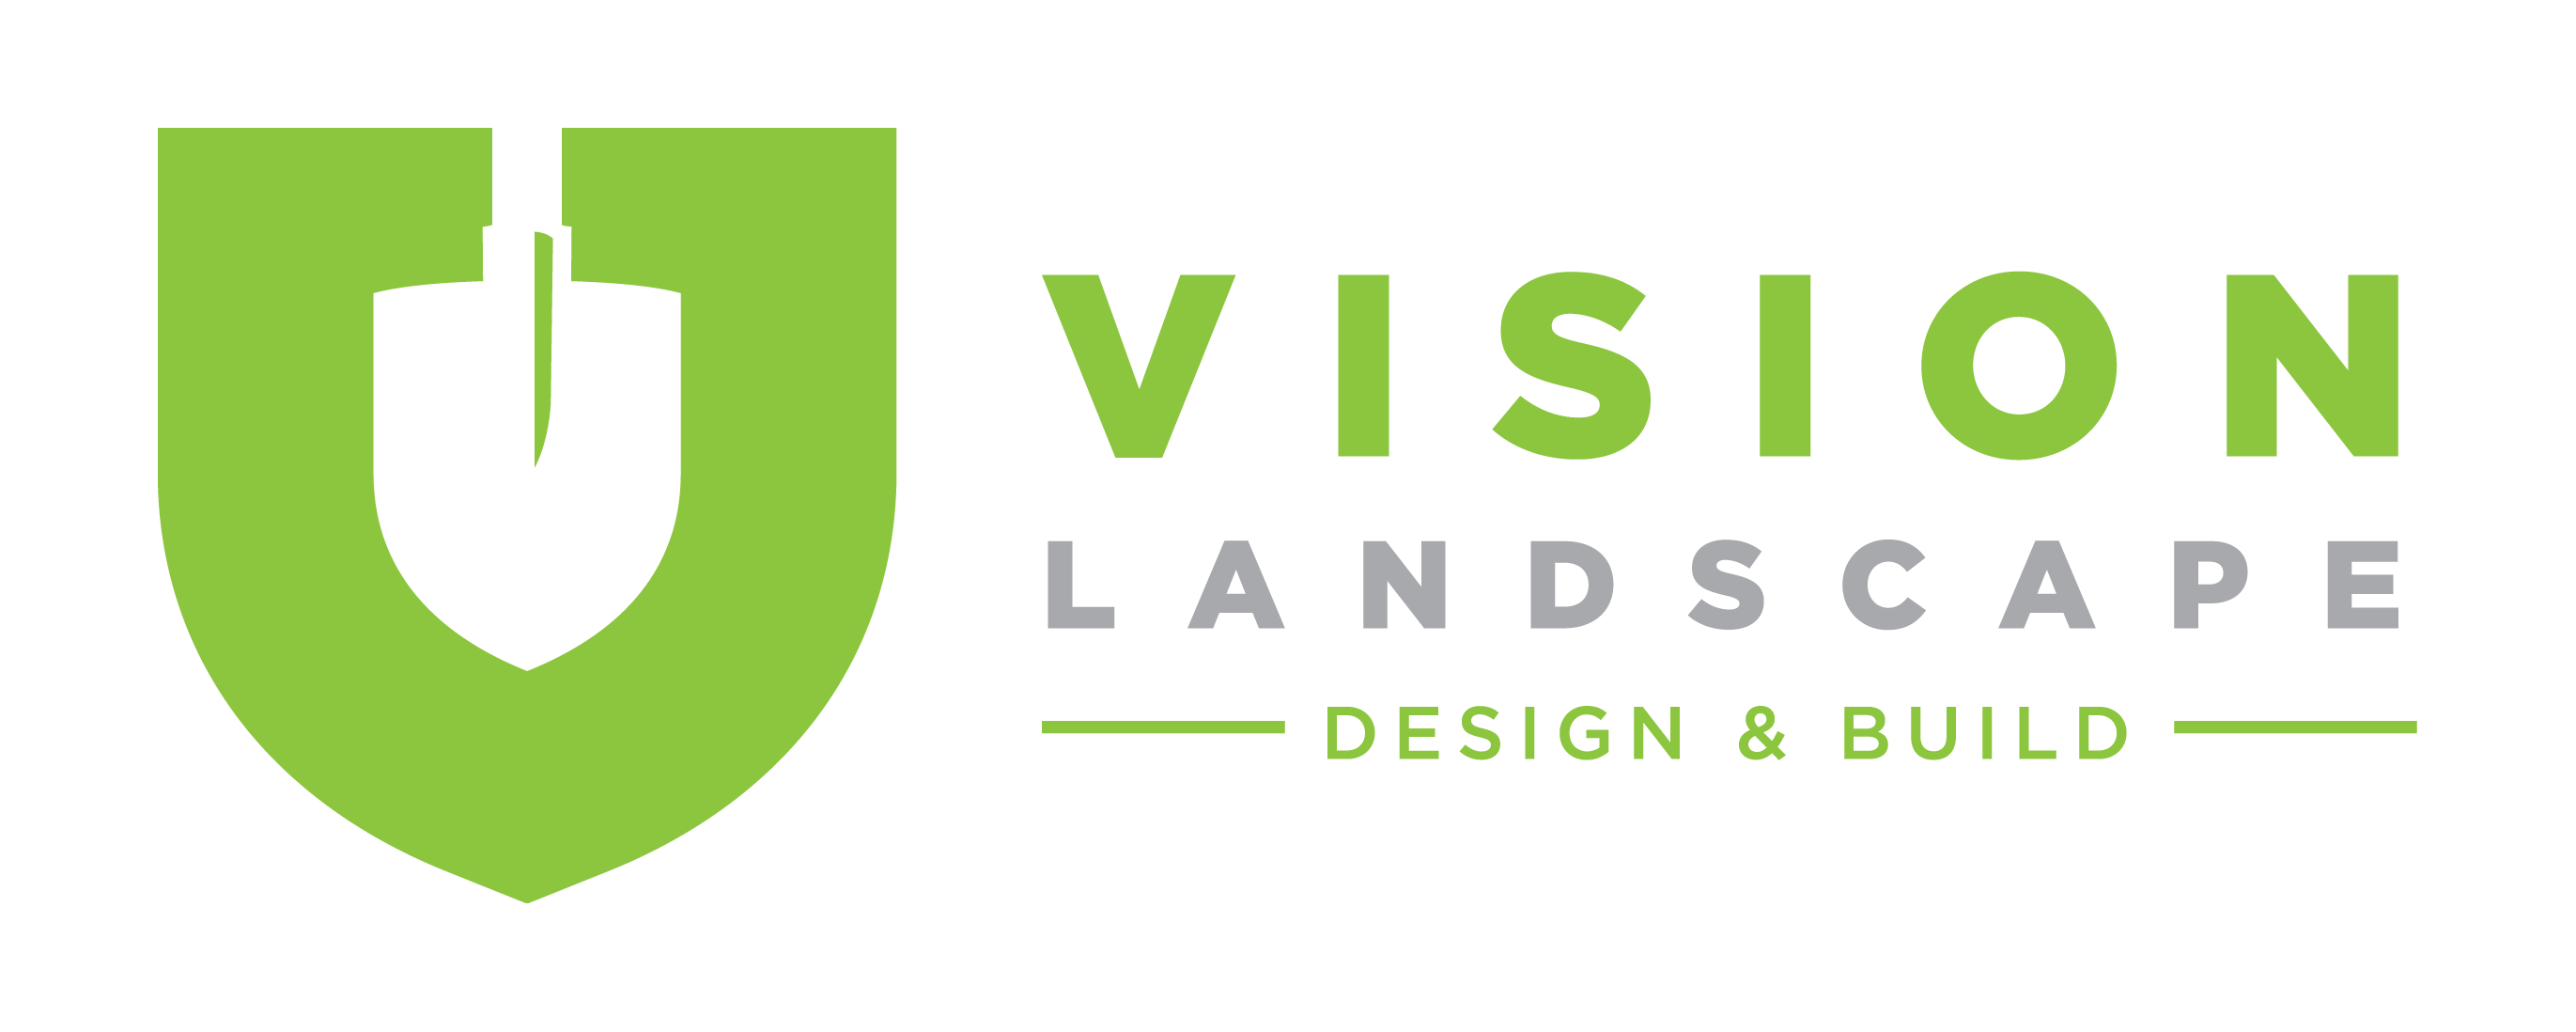 Christmas Light Installation – Vision Landscape – Design & Build